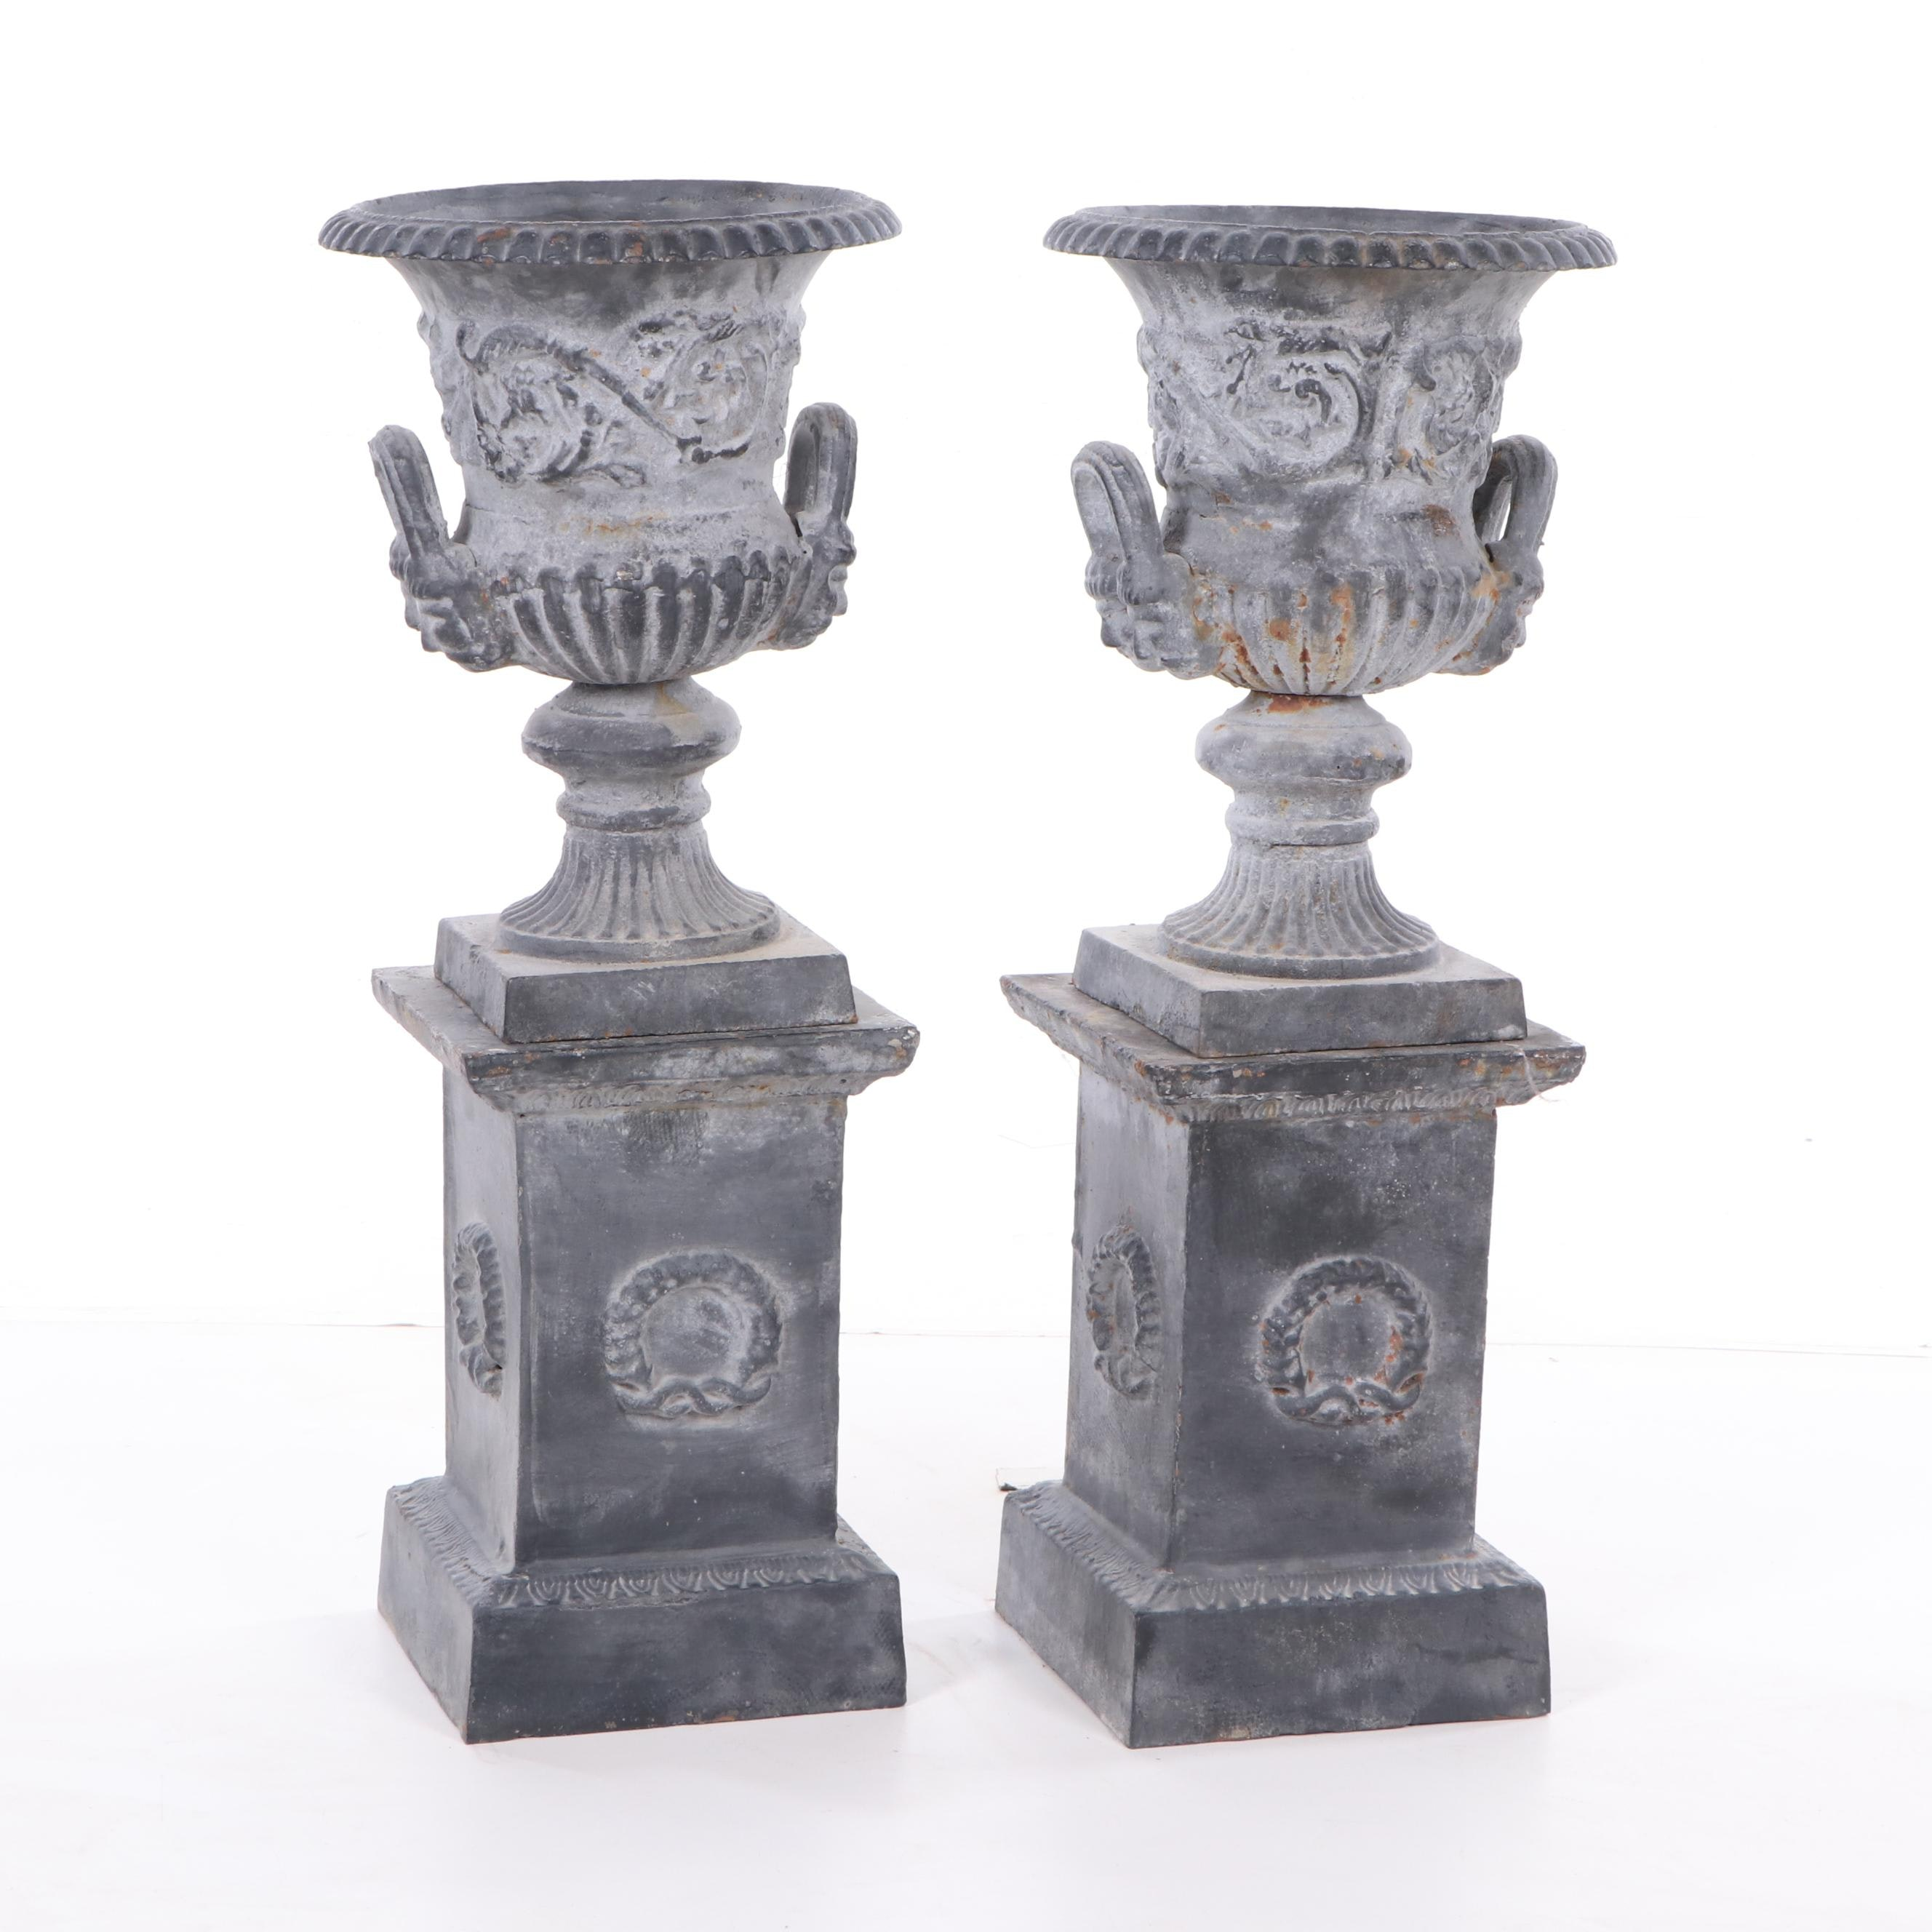 Neoclassical Style Cast Iron Planters on Bases